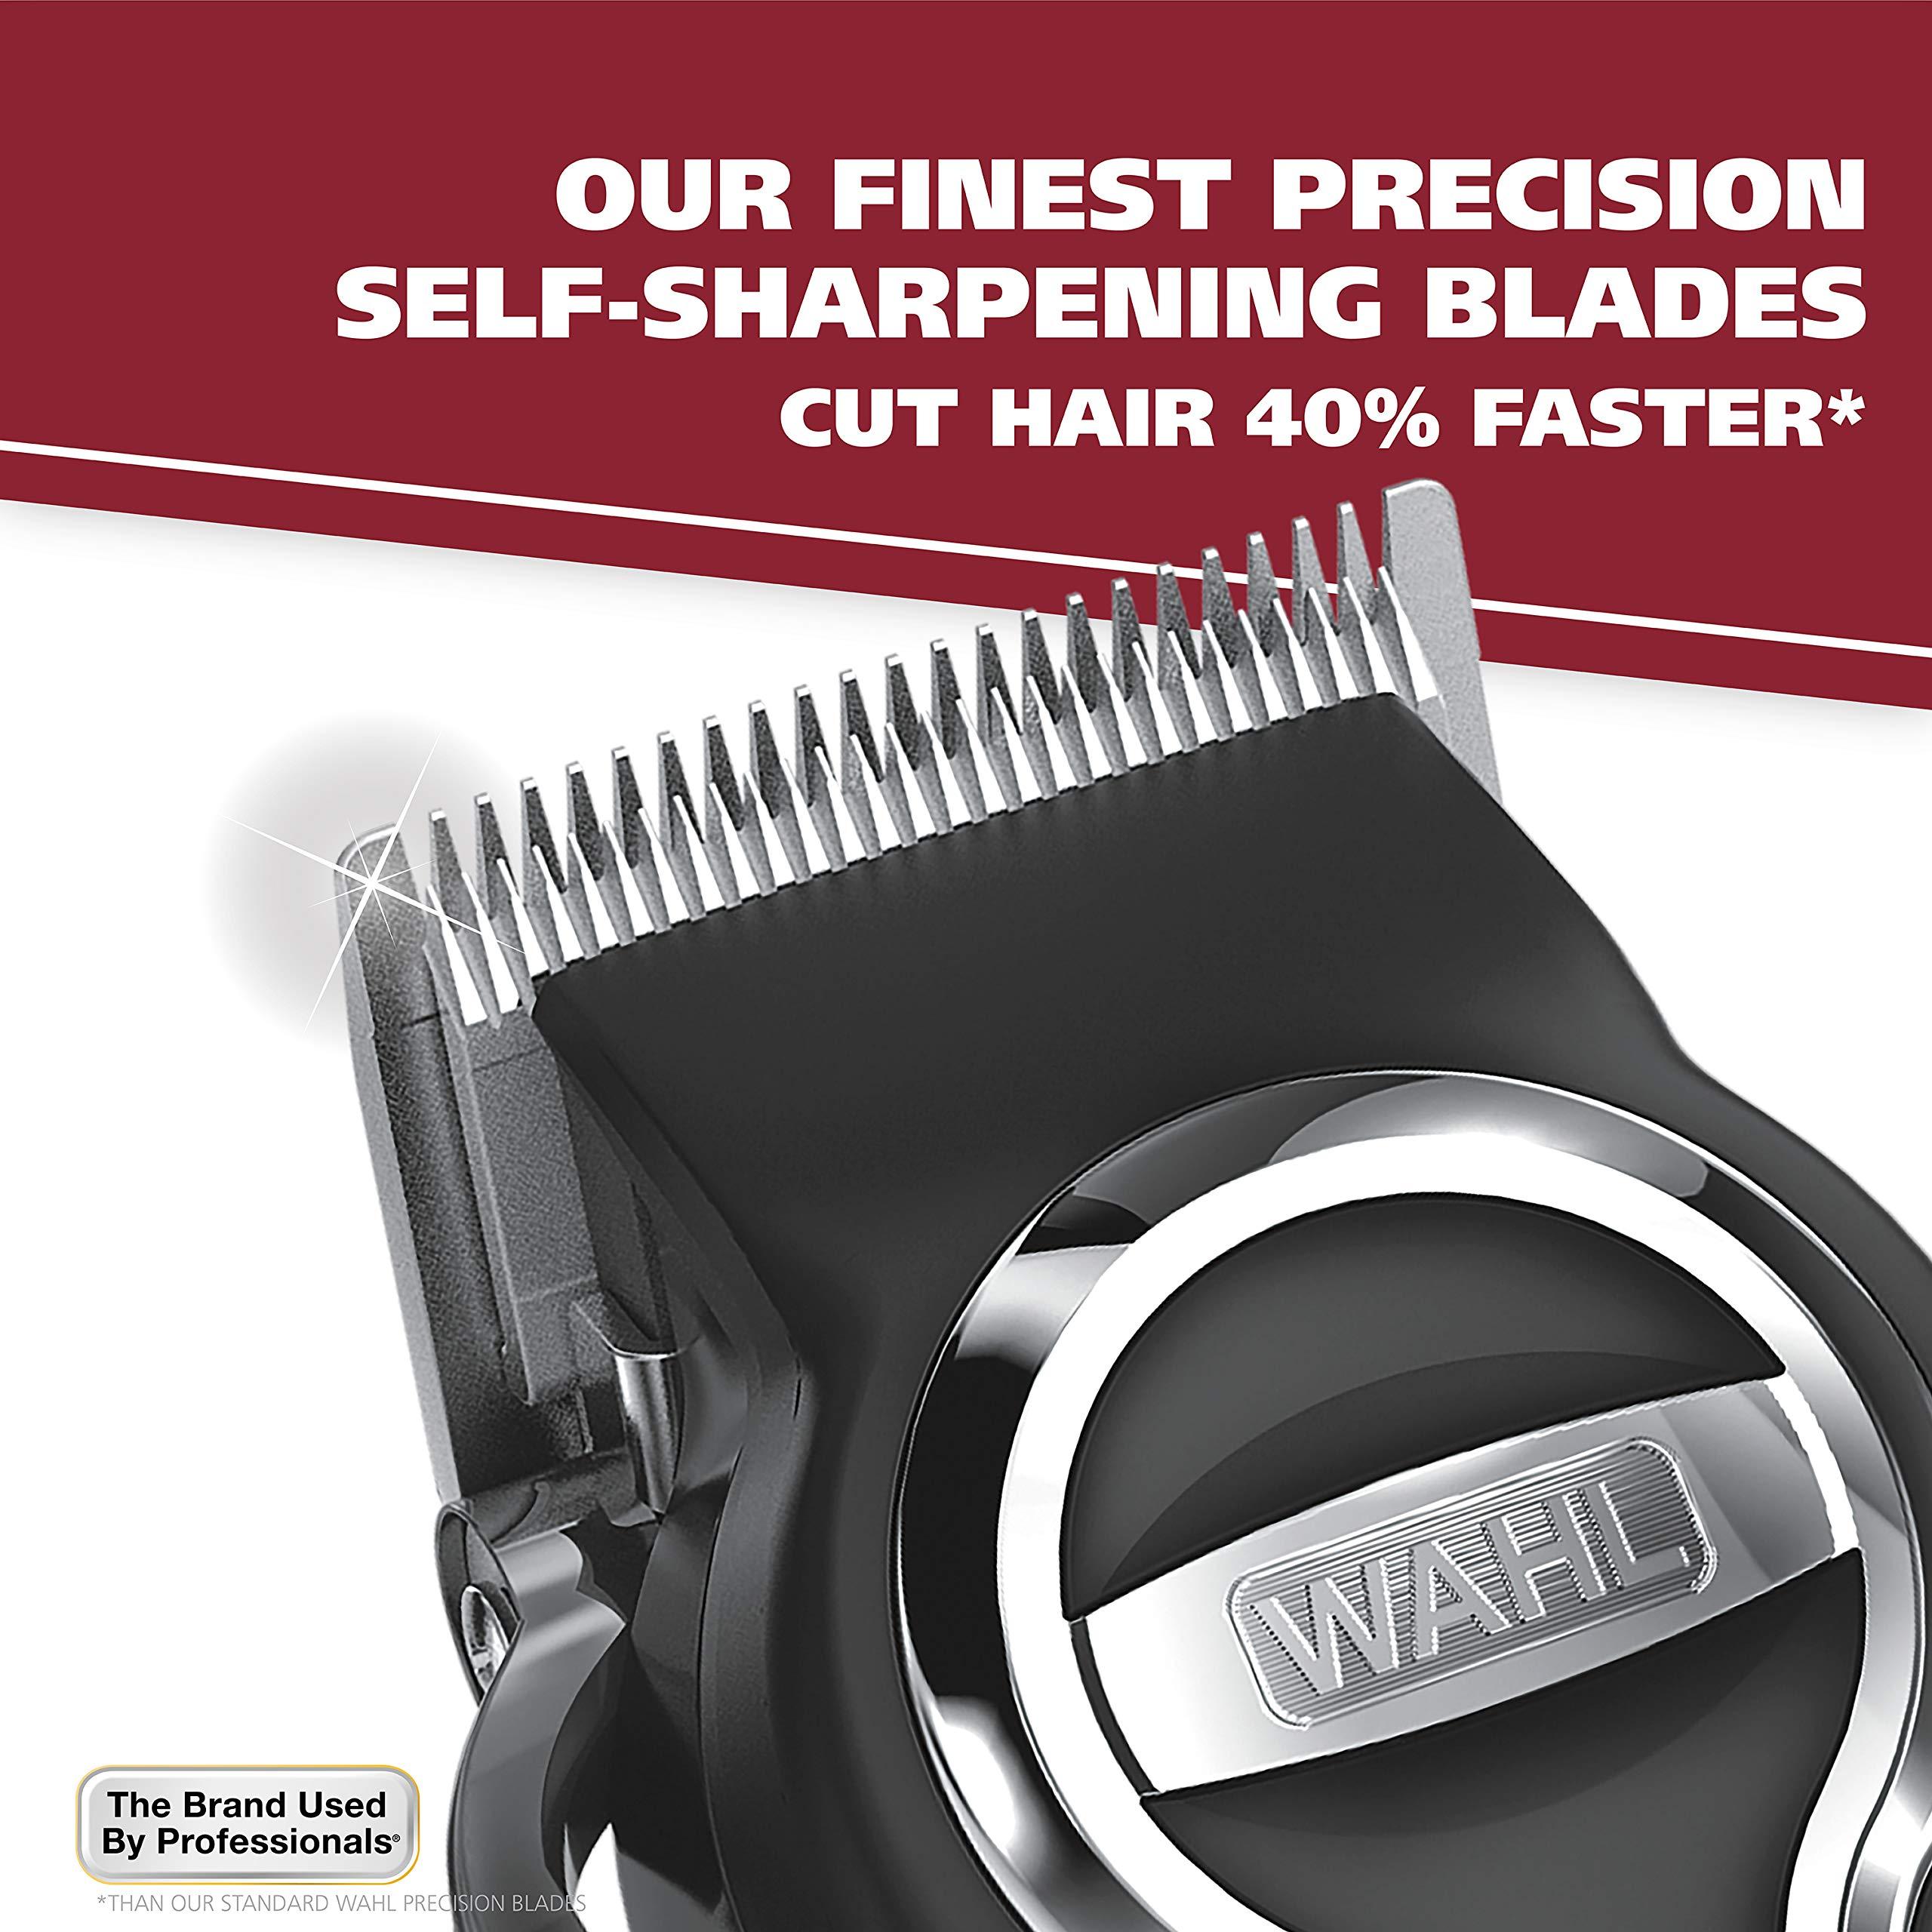 Wahl Clipper Elite Pro High Performance Haircut Kit for men, includes Electric Hair Clippers, secure fit guide combs with stainless steel clips - By The Brand used by Professionals #79602 by WAHL (Image #3)